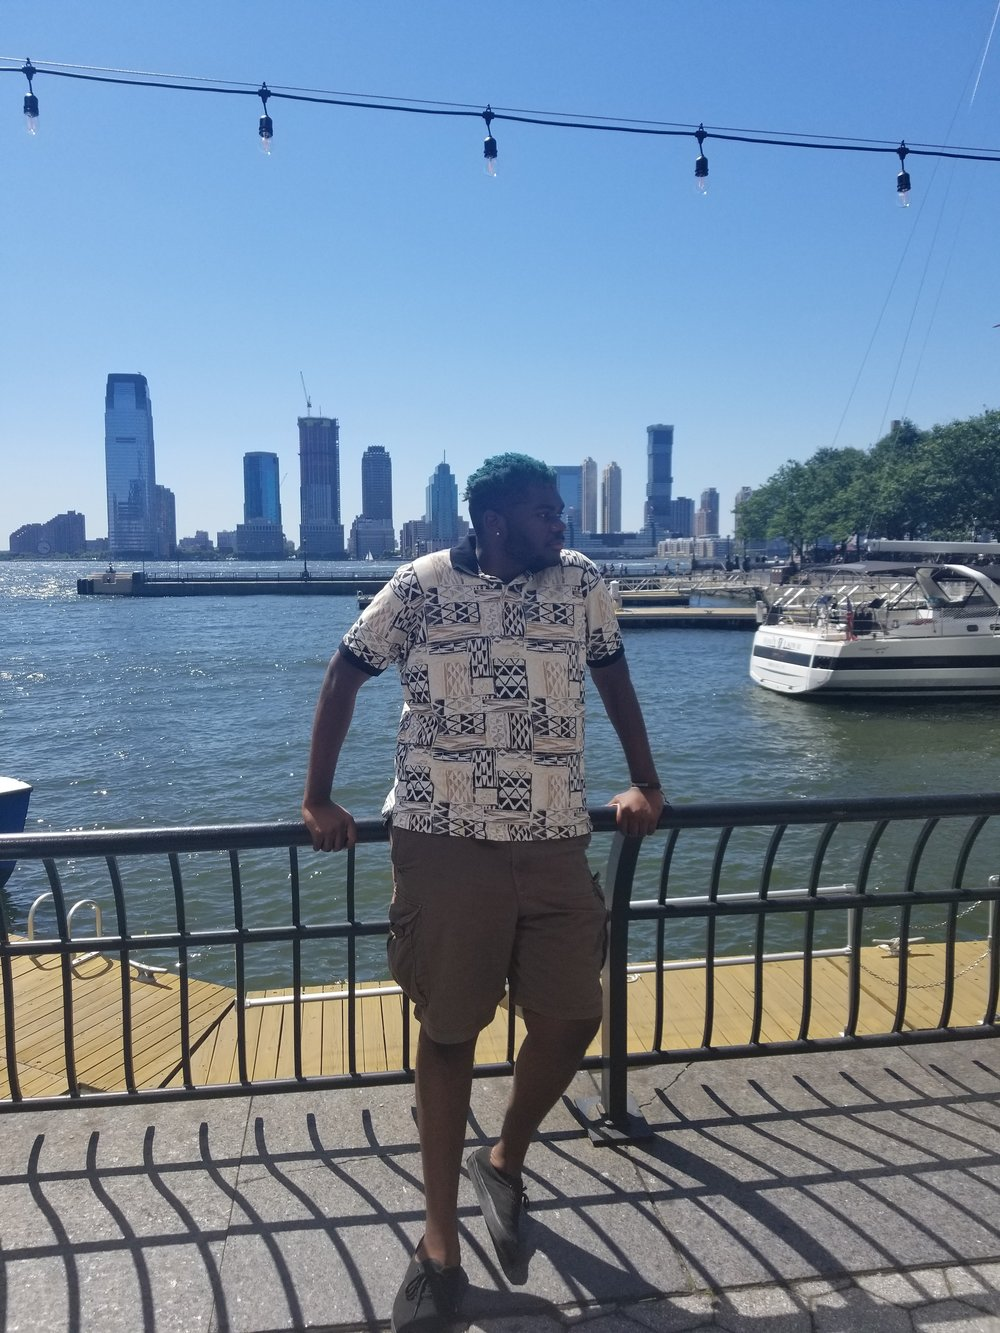 Hi! My name is AJ - I am an academic mentor for BioFIRE. I'm in the College of Letters and Sciences right now but plan on majoring in biological sciences with a specialization in microbiology. I am pre-med and currently planning on pursuing an MD/PhD. As an academic mentor I want to not only engage students, but also encourage them to pursue their goals. I am also part of the peer mentor team!